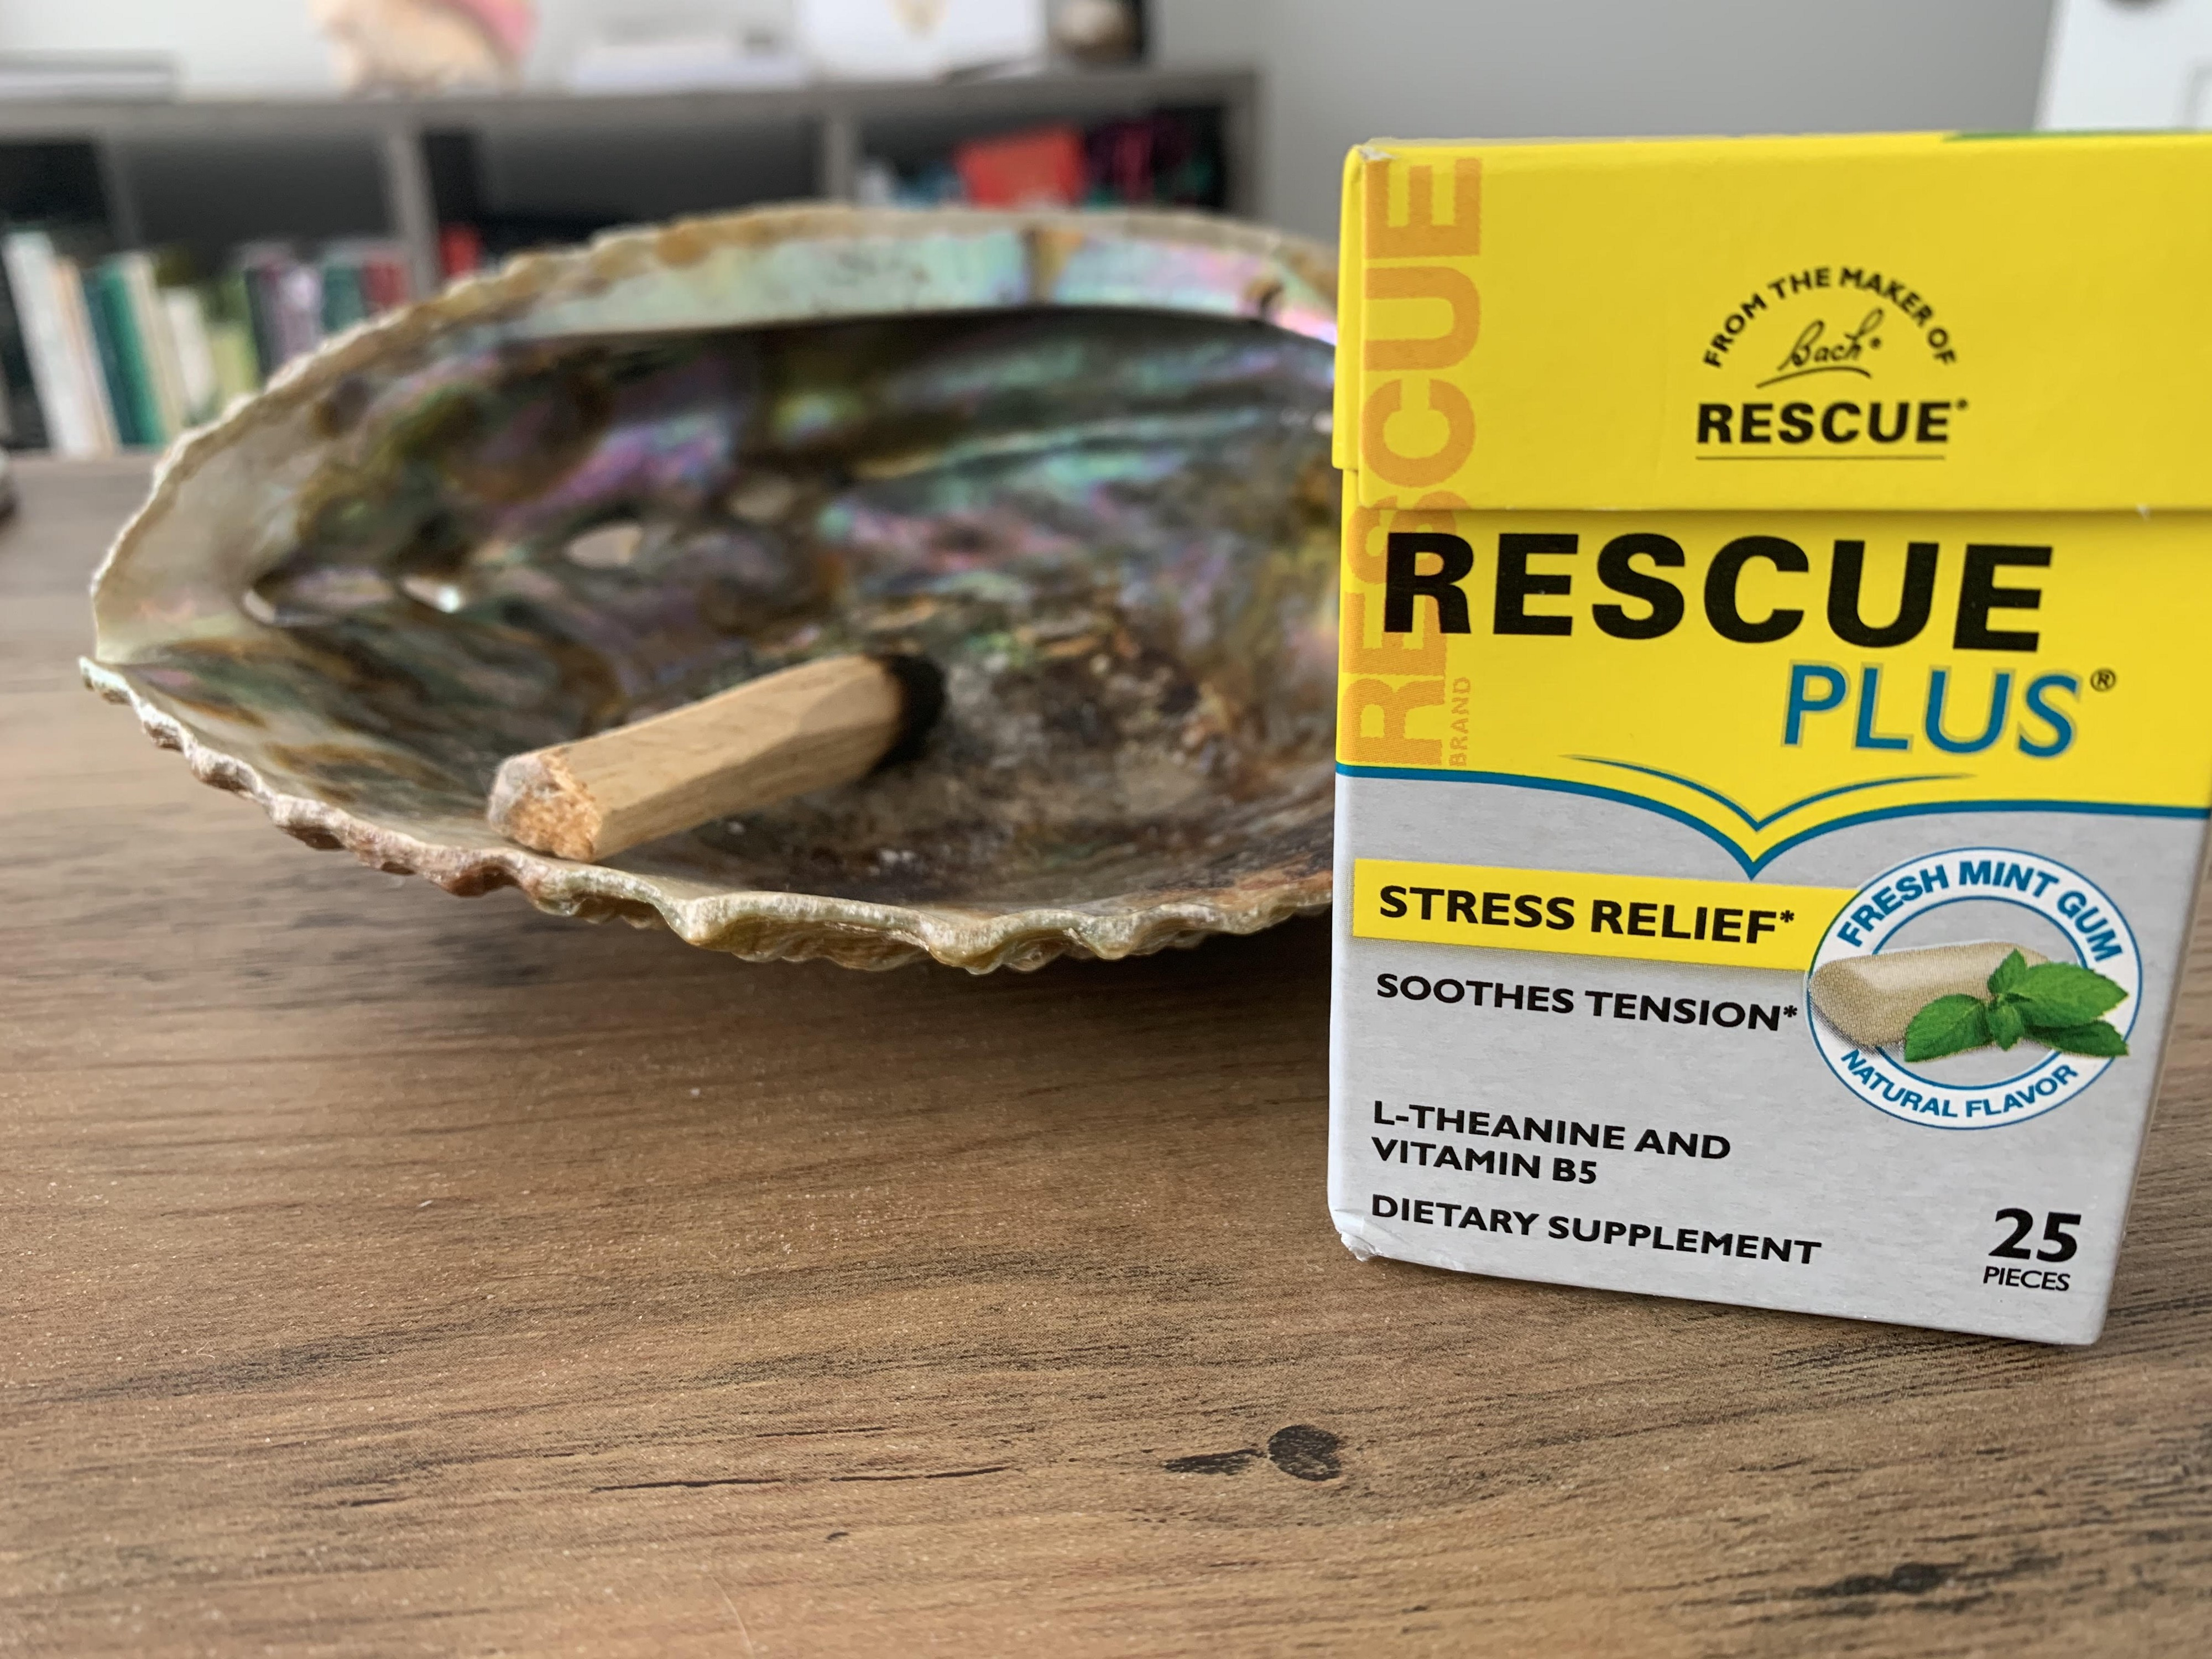 A shell with a stick of palo santo wood and a box of Bach Rescue Plus mint gum